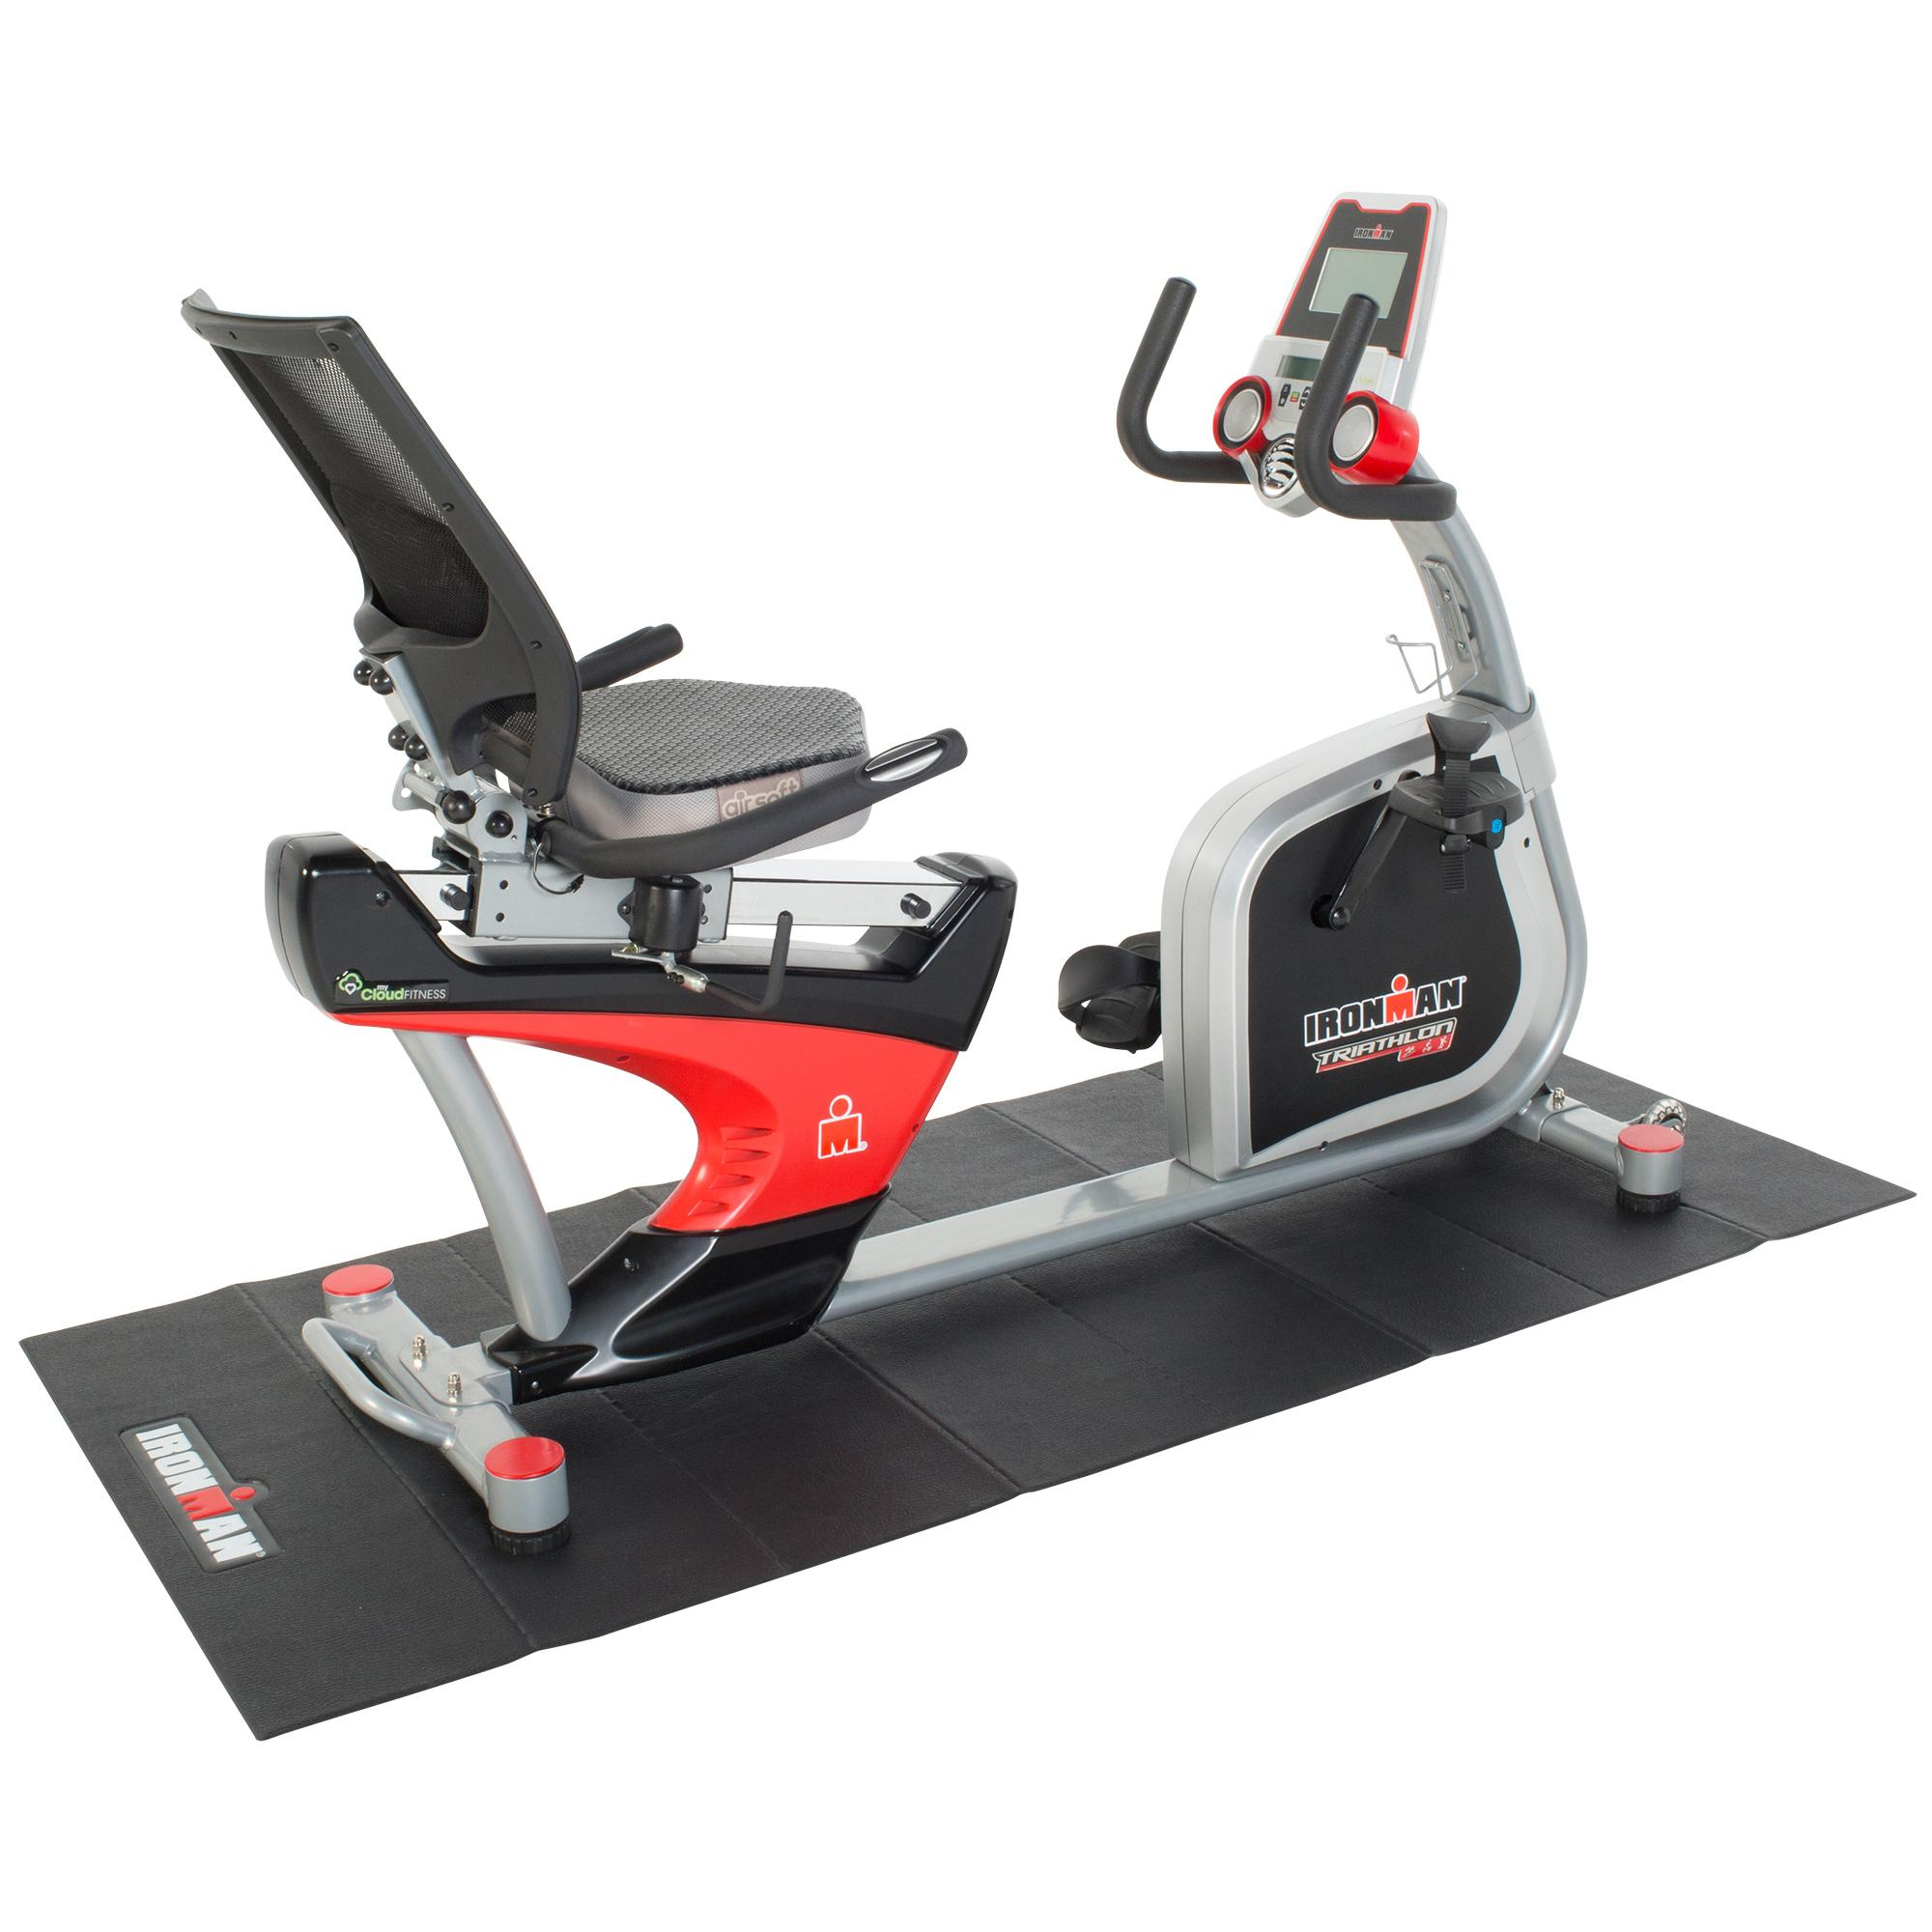 Ironman Triathlon X Class 410 Smart Technology Recumbent